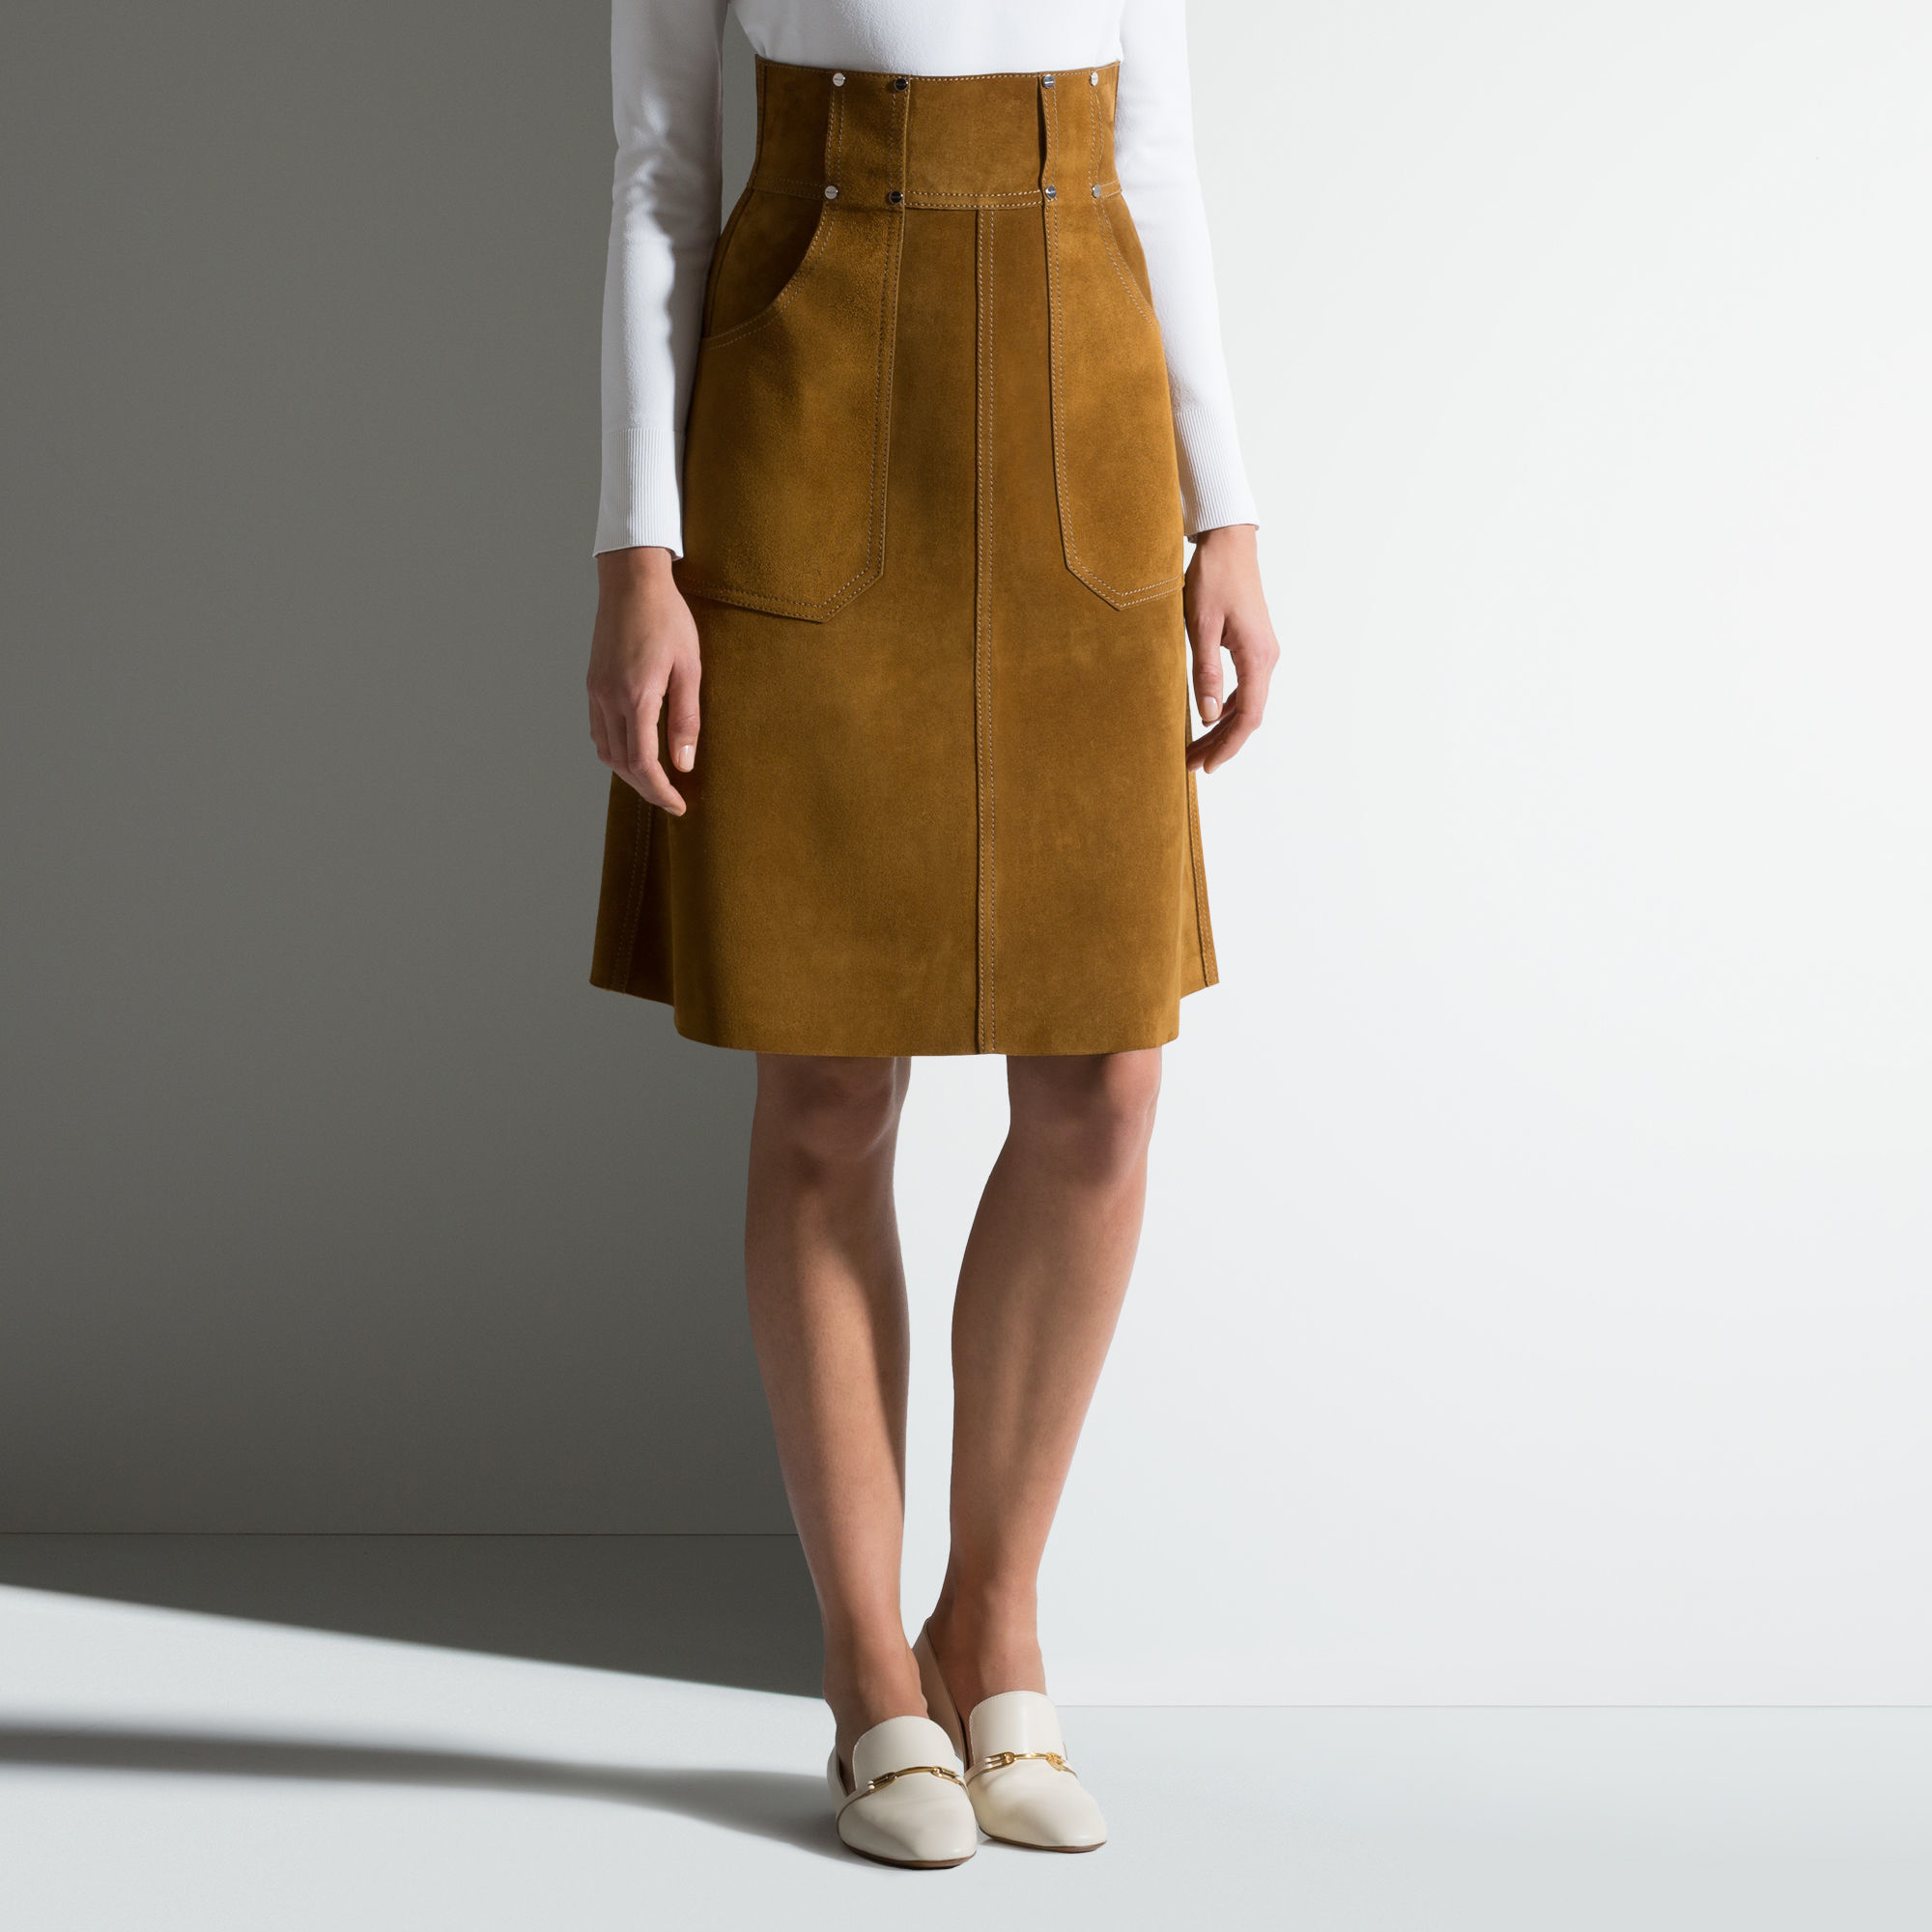 Brown Suede A Line Skirt - Dress Ala